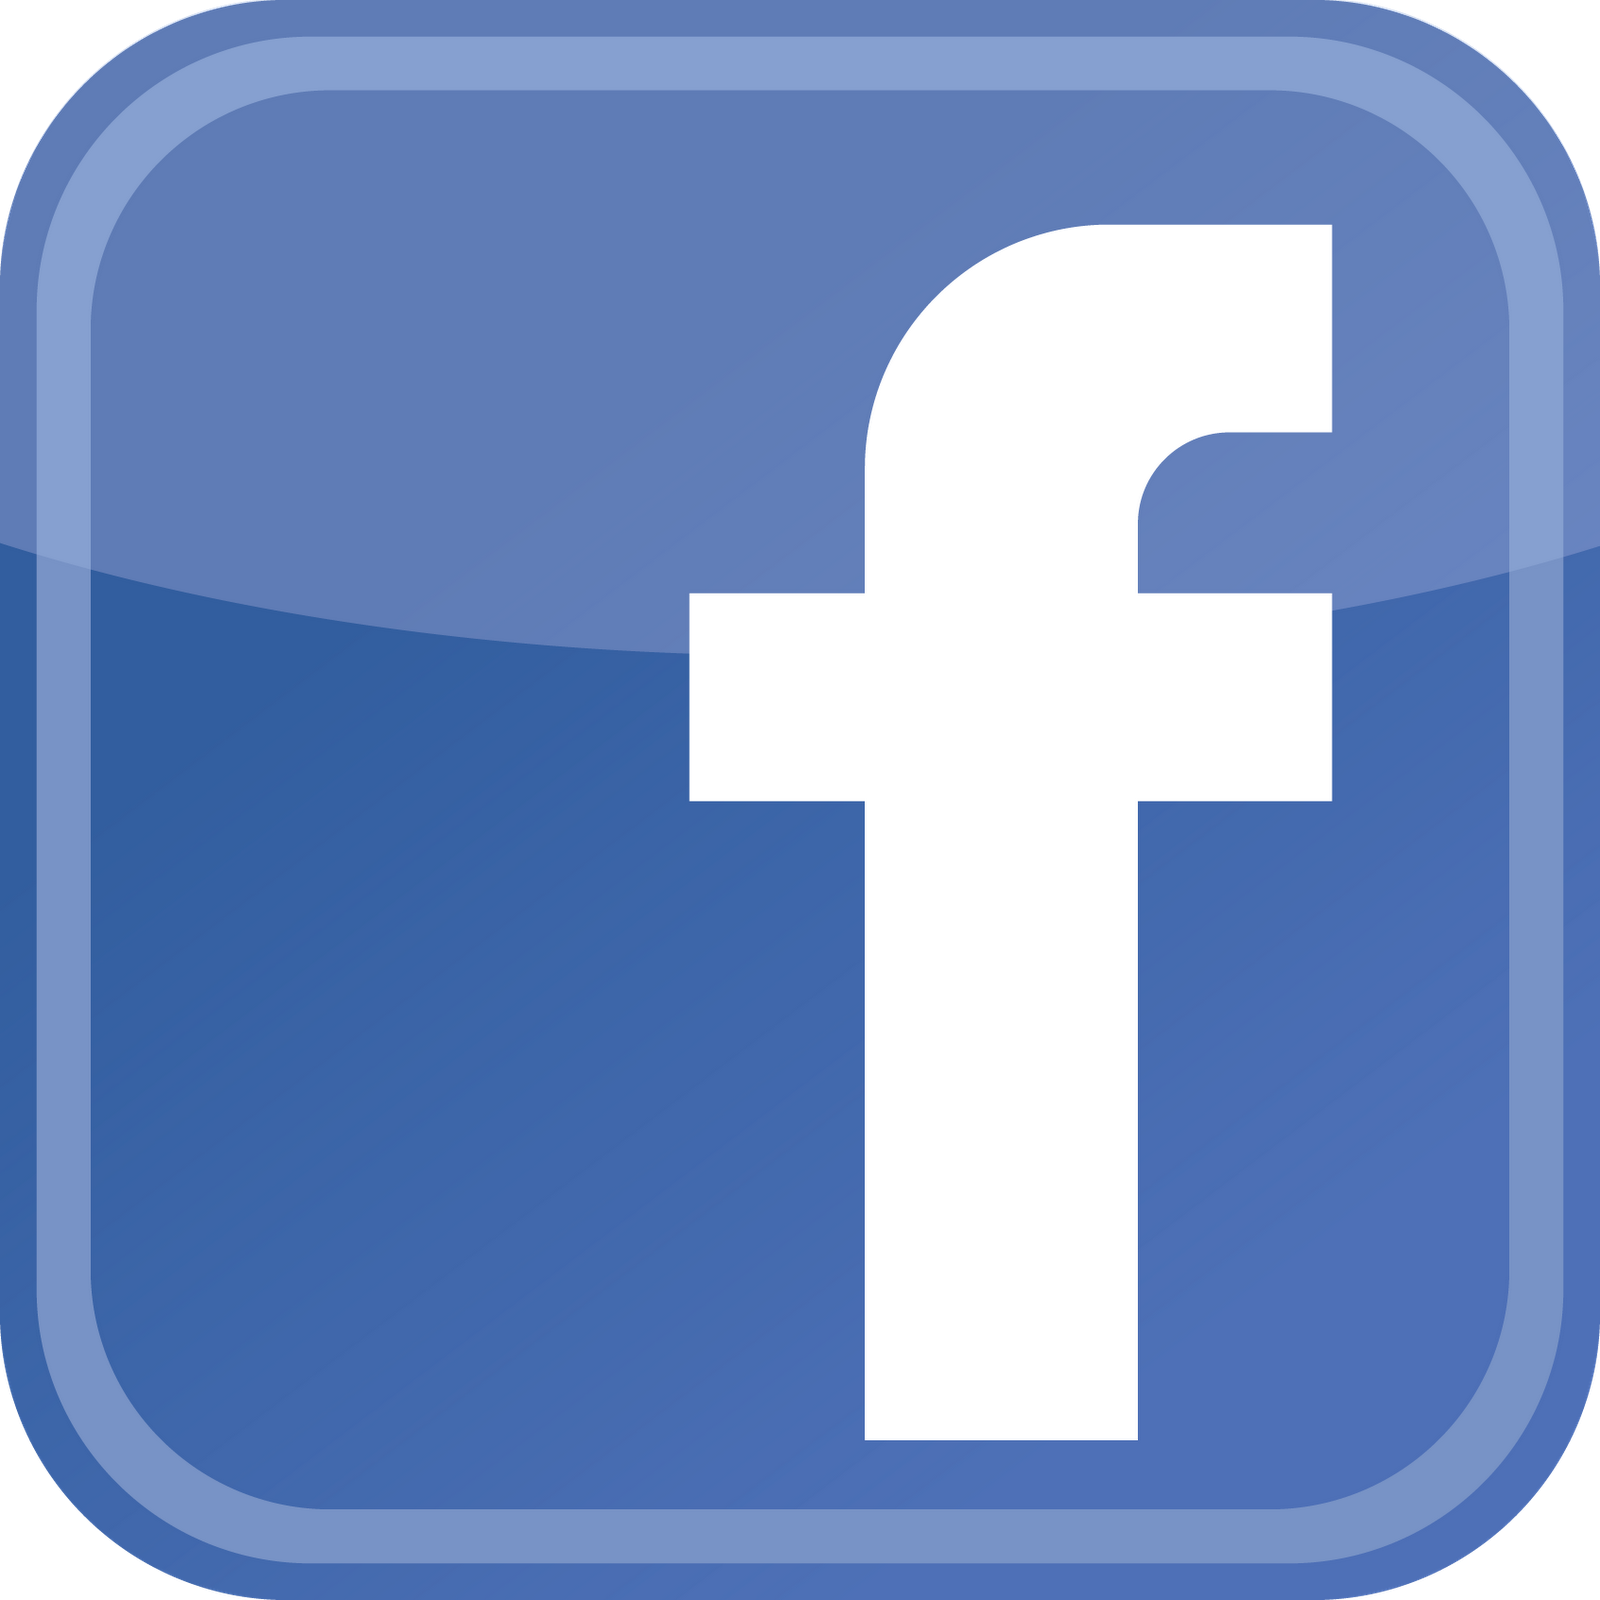 facebook_logo_2.png